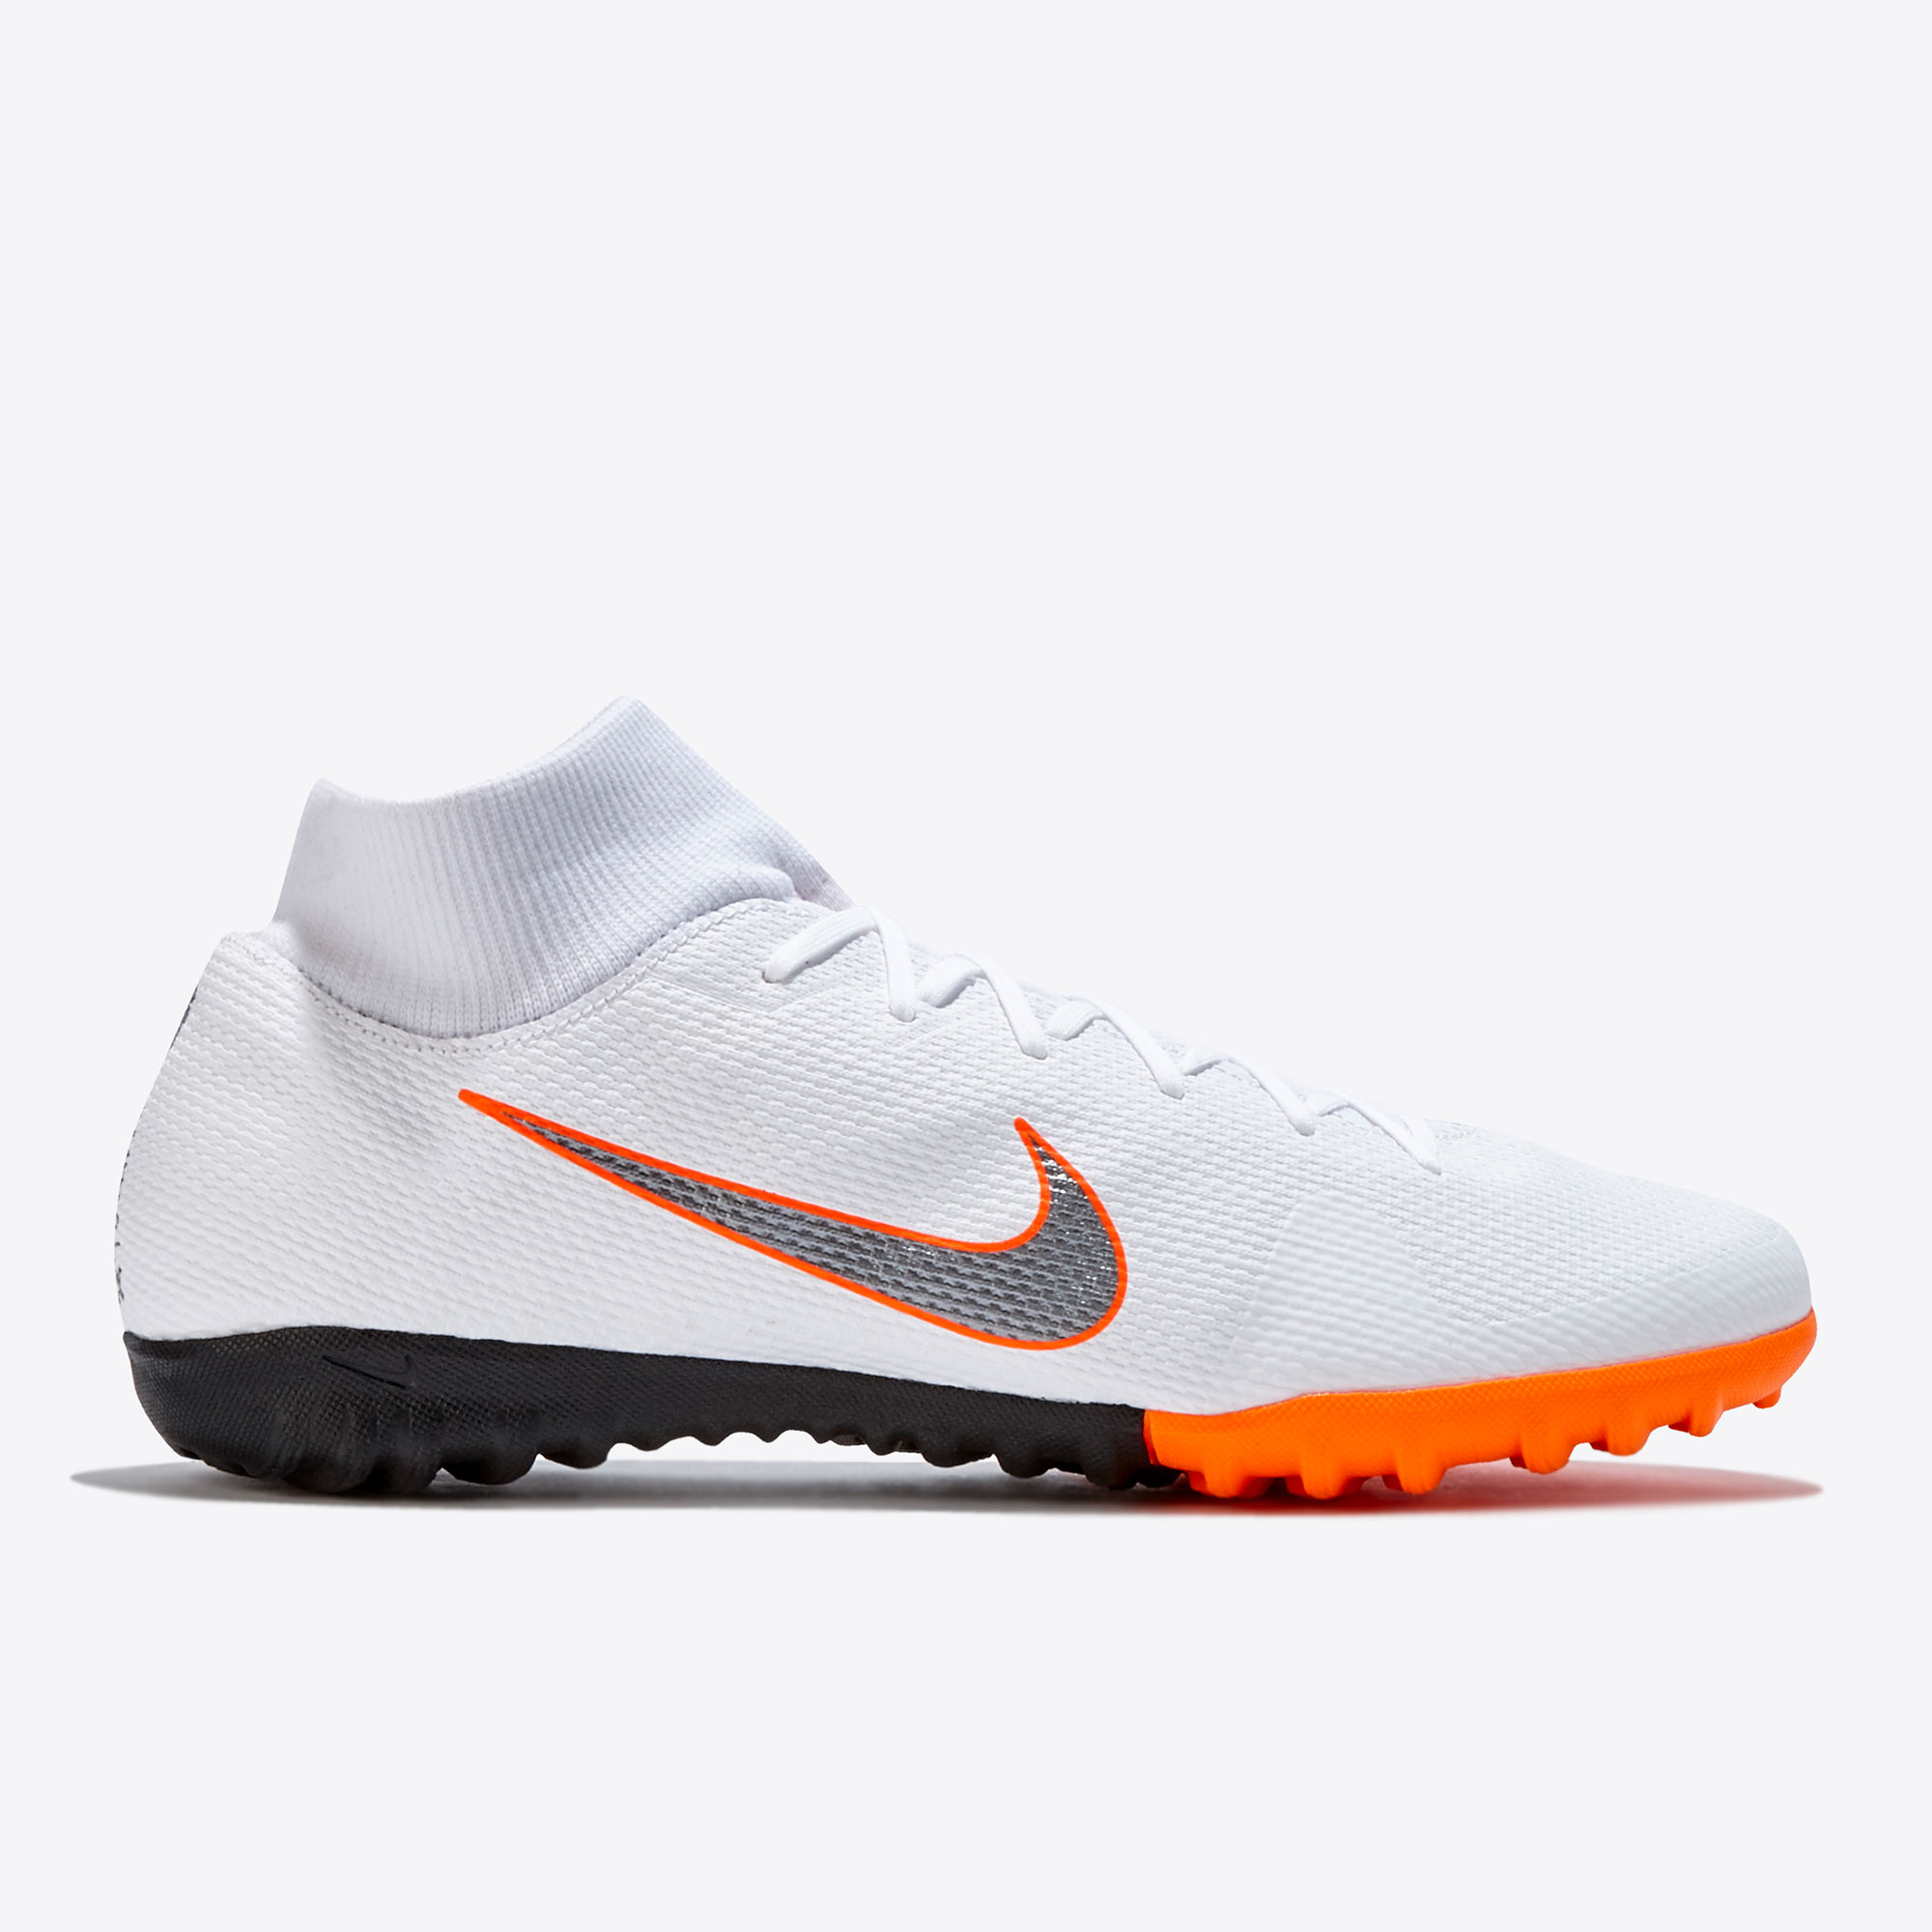 Chaussures Nike MercurialX Superfly6 Academy pour surface synthétique - Enfants